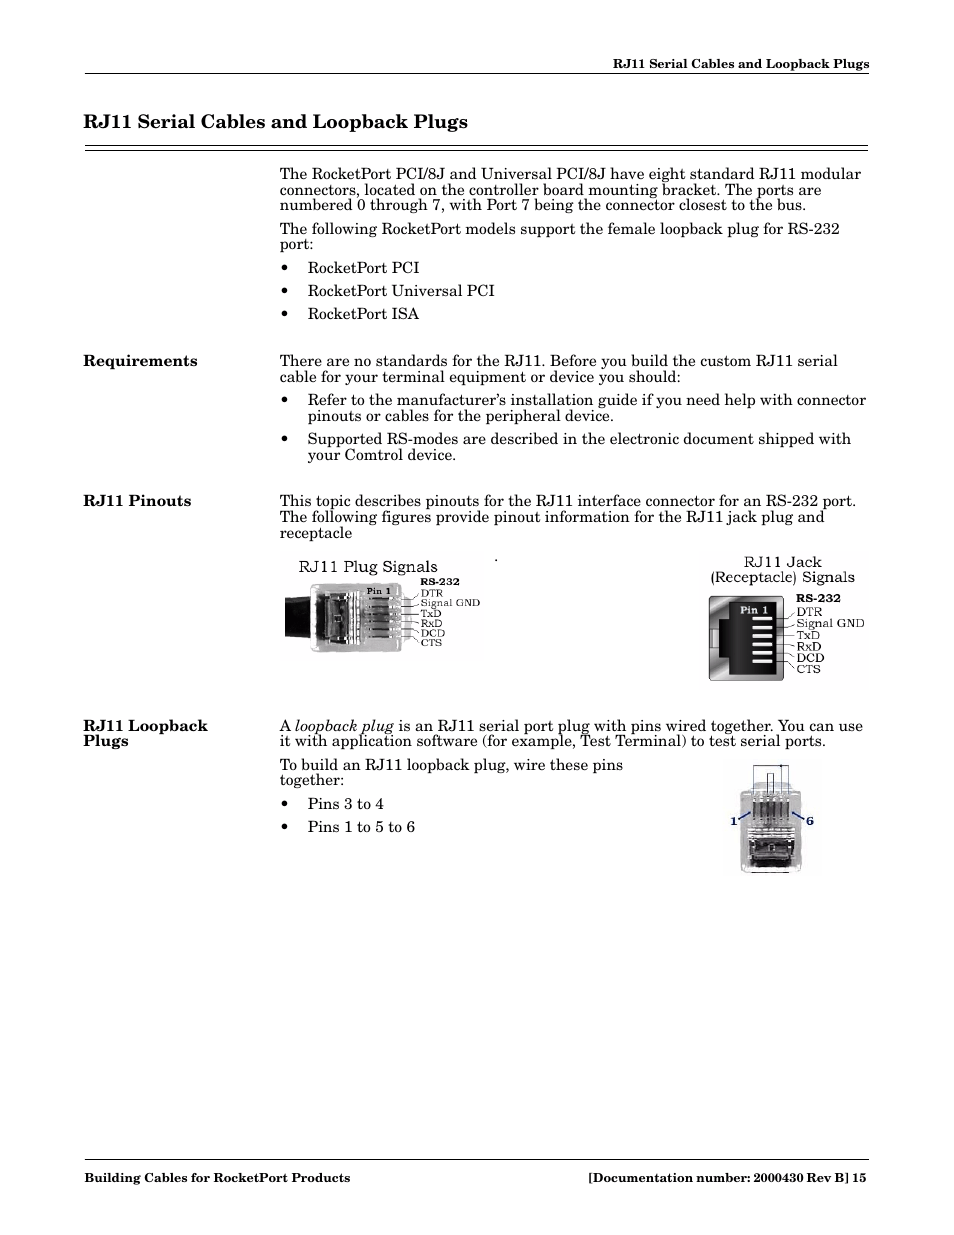 medium resolution of rj11 serial cables and loopback plugs requirements rj11 pinouts comtrol cable user manual